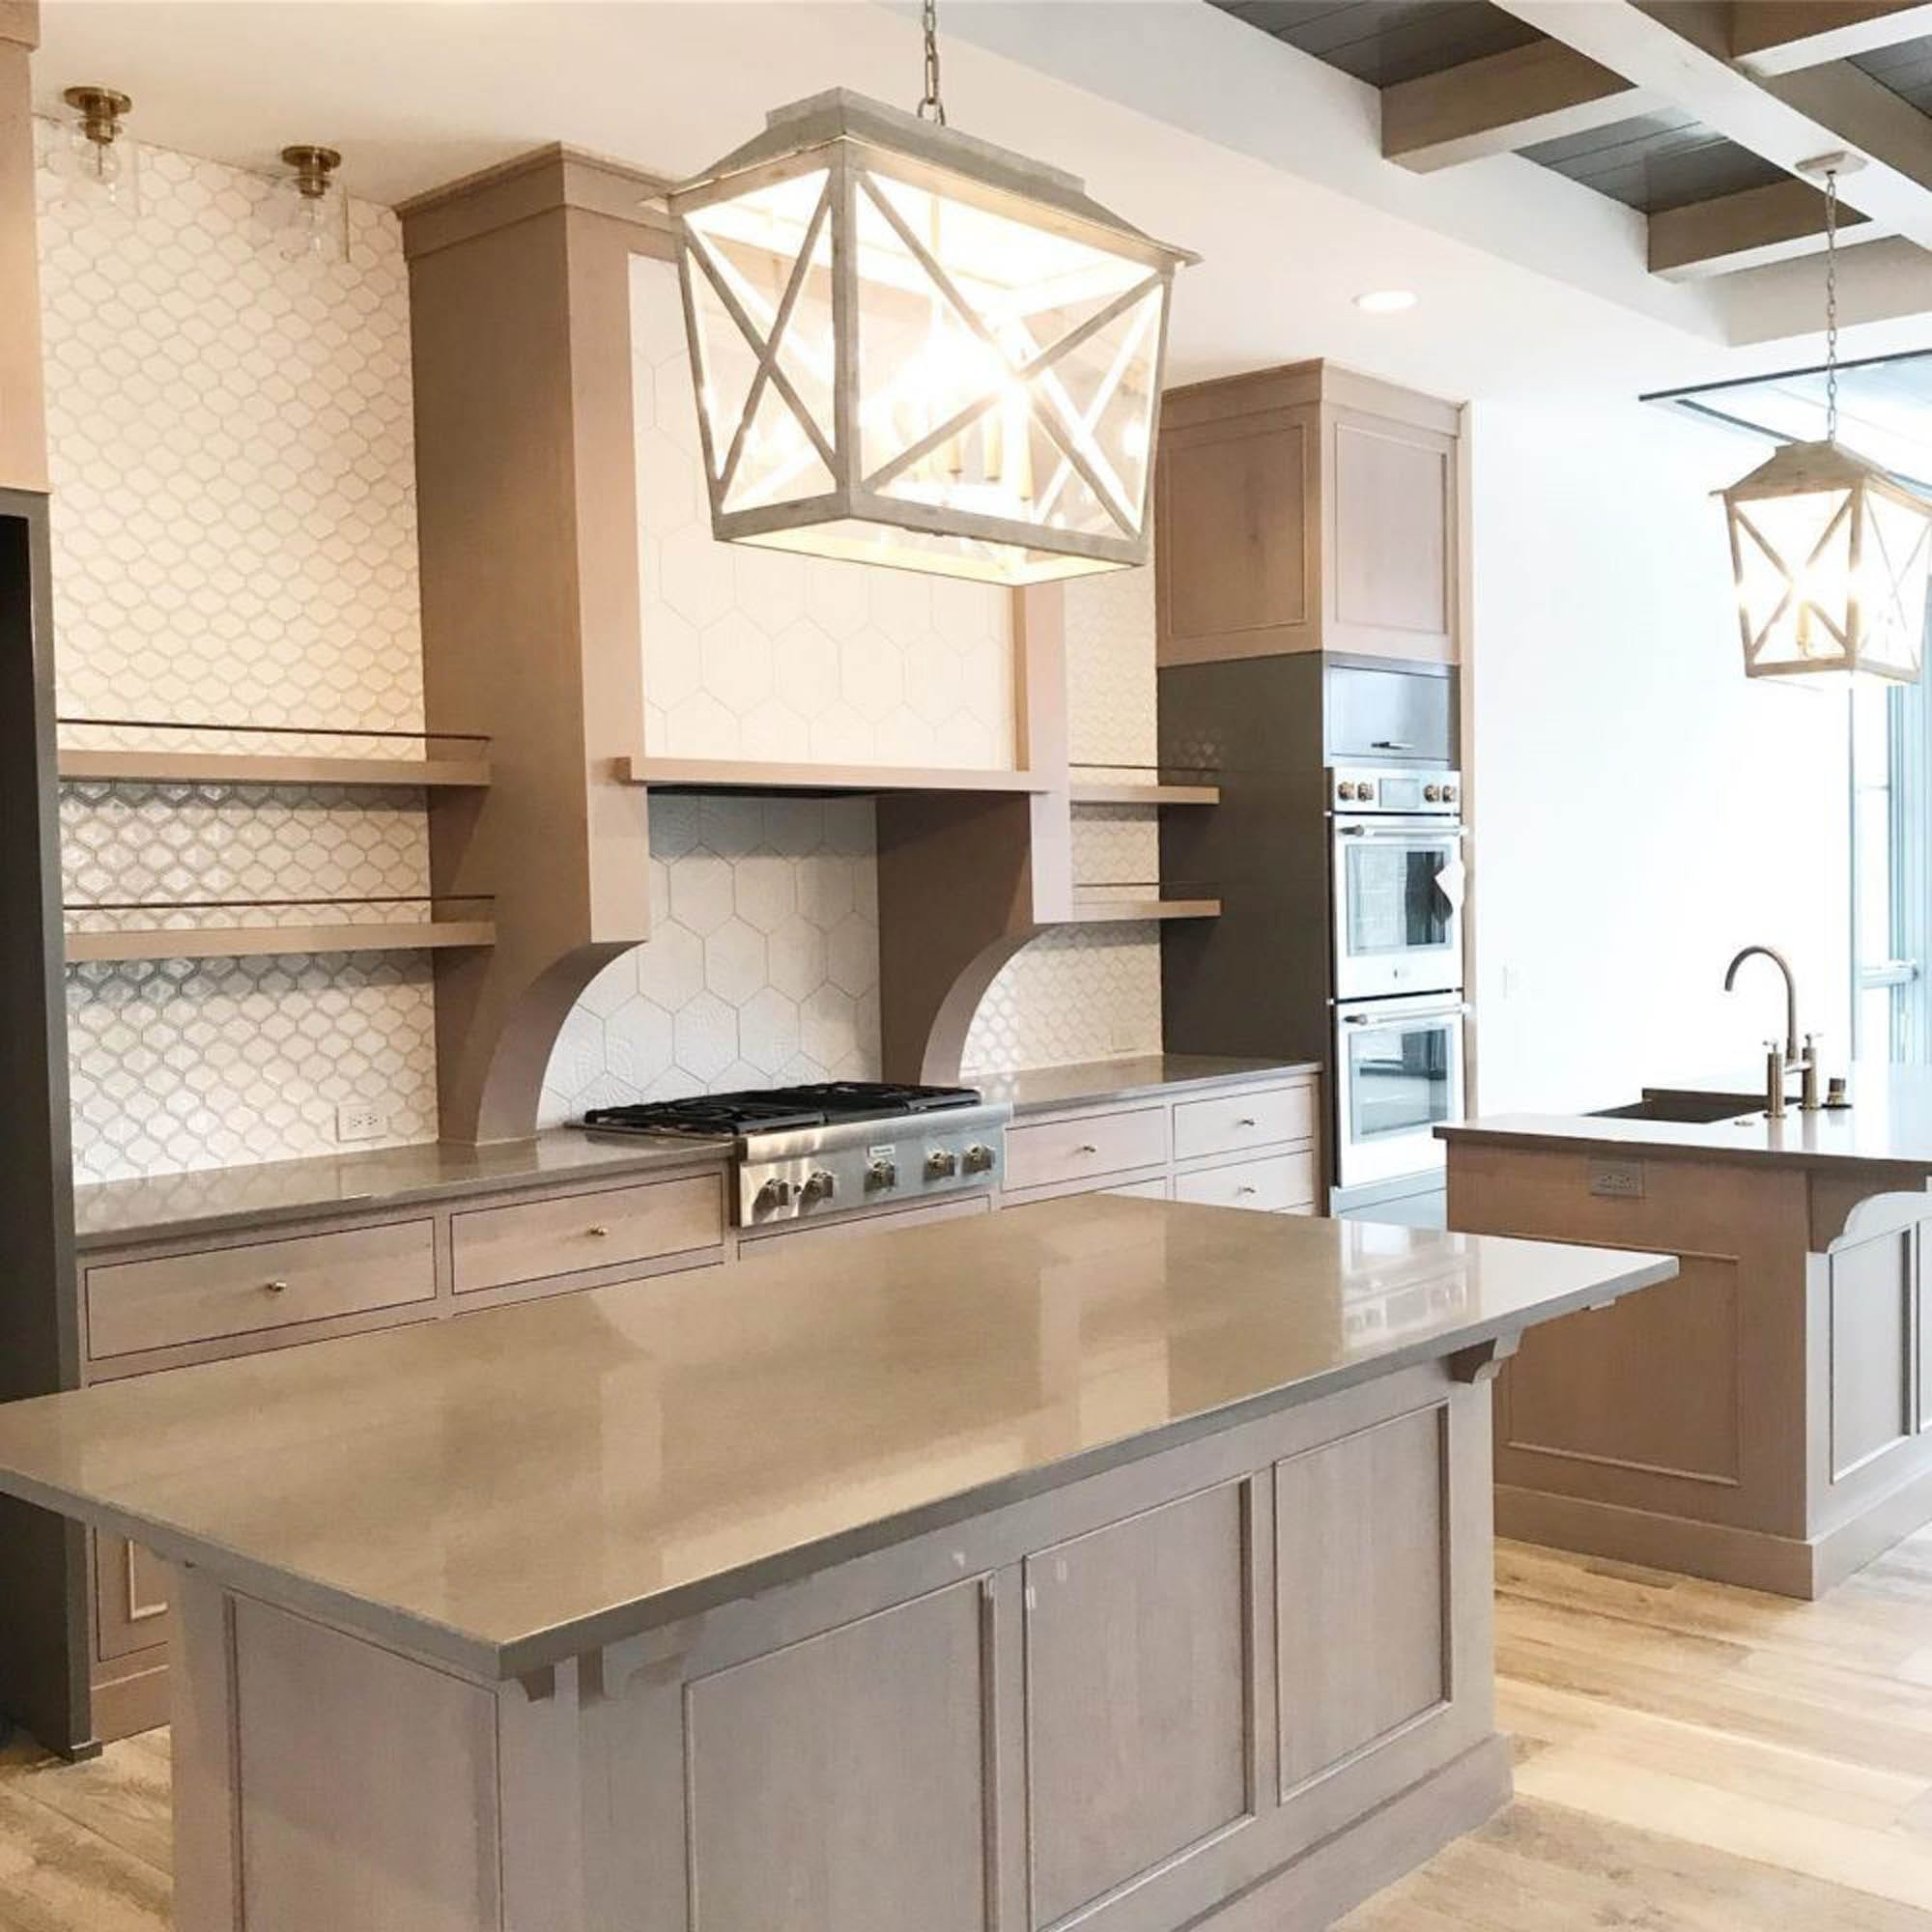 French farmhouse kitchen with two islands